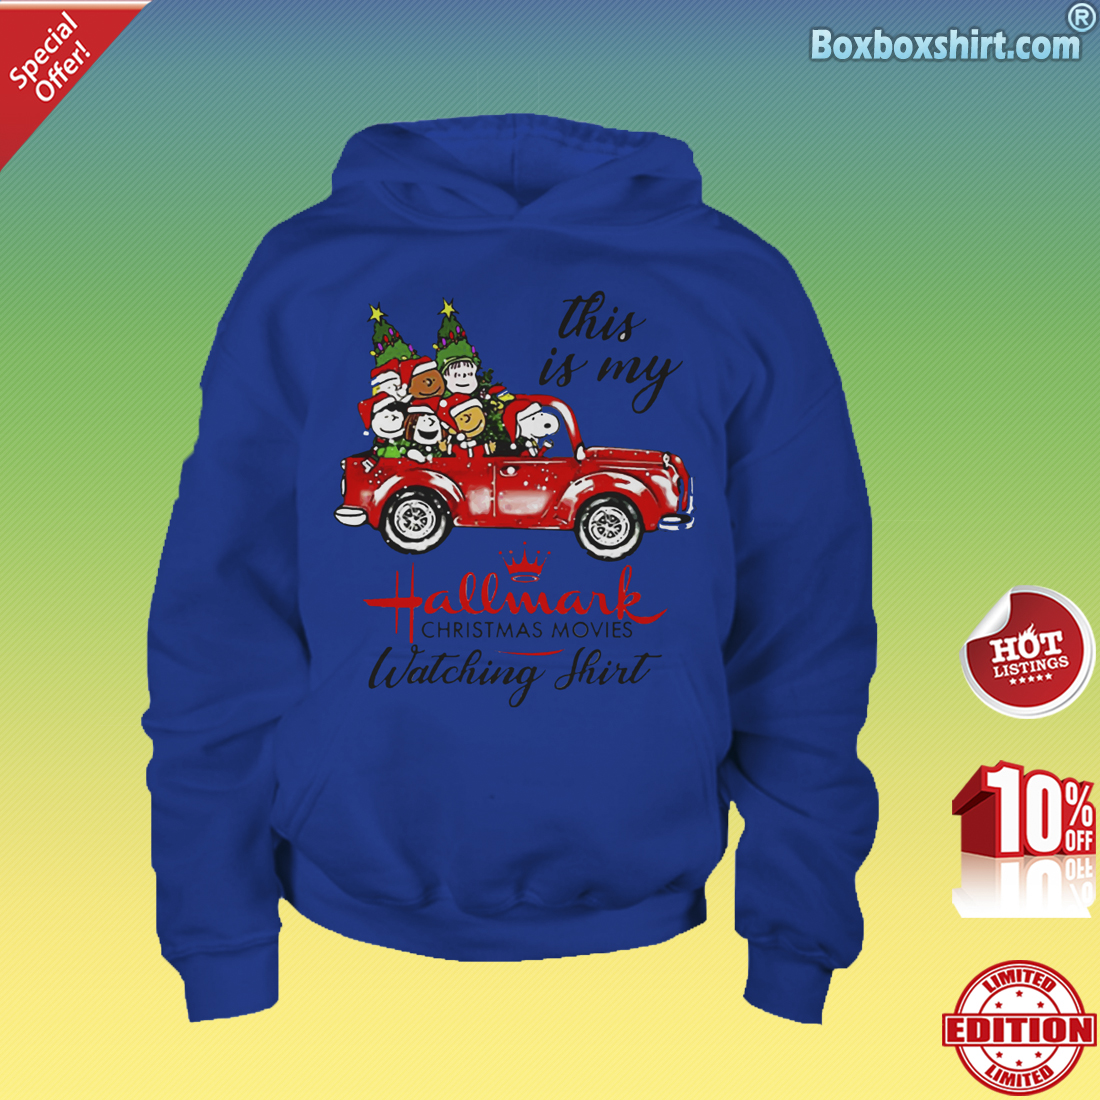 Snoopy and friend this is my Hallmark Christmas Movies-Youth Hoddie